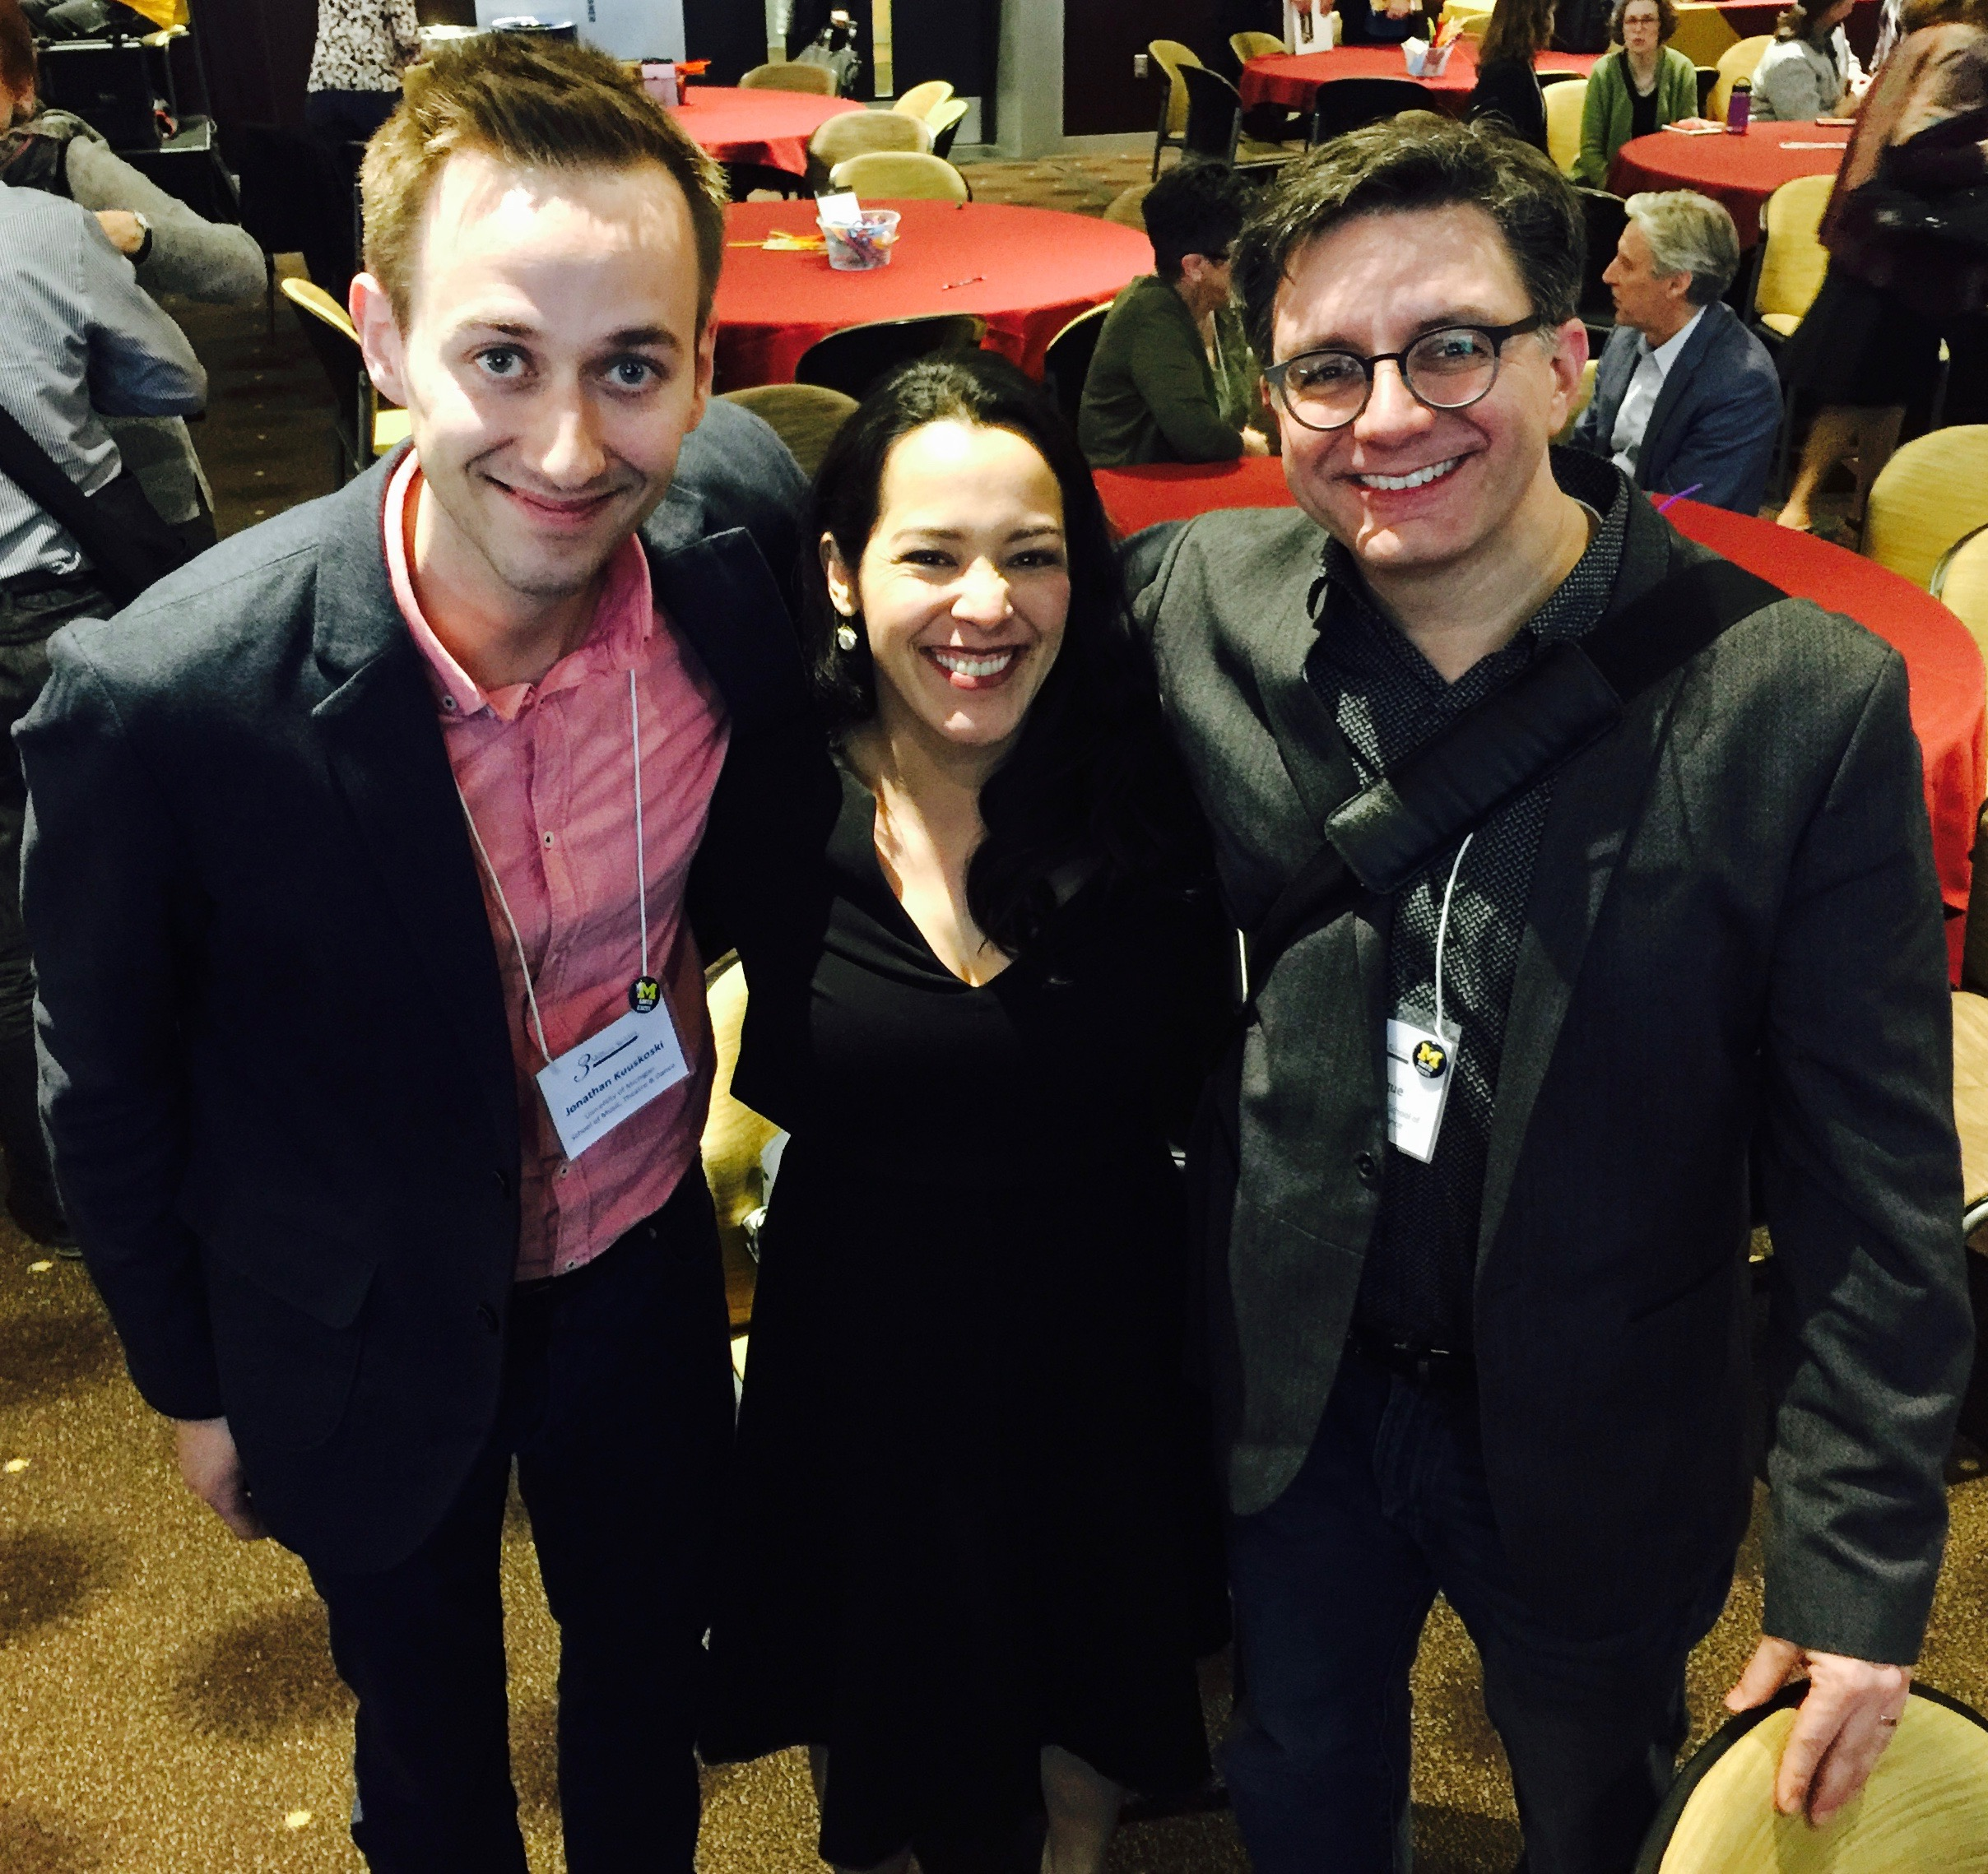 University of Michigan SMTD's EXCEL leadership team Jonathan Kuuskoski and mark Clague, bookend CAM's Angie Buckley at the 3 Million Stories Conference at ASU. March 4, 2015.